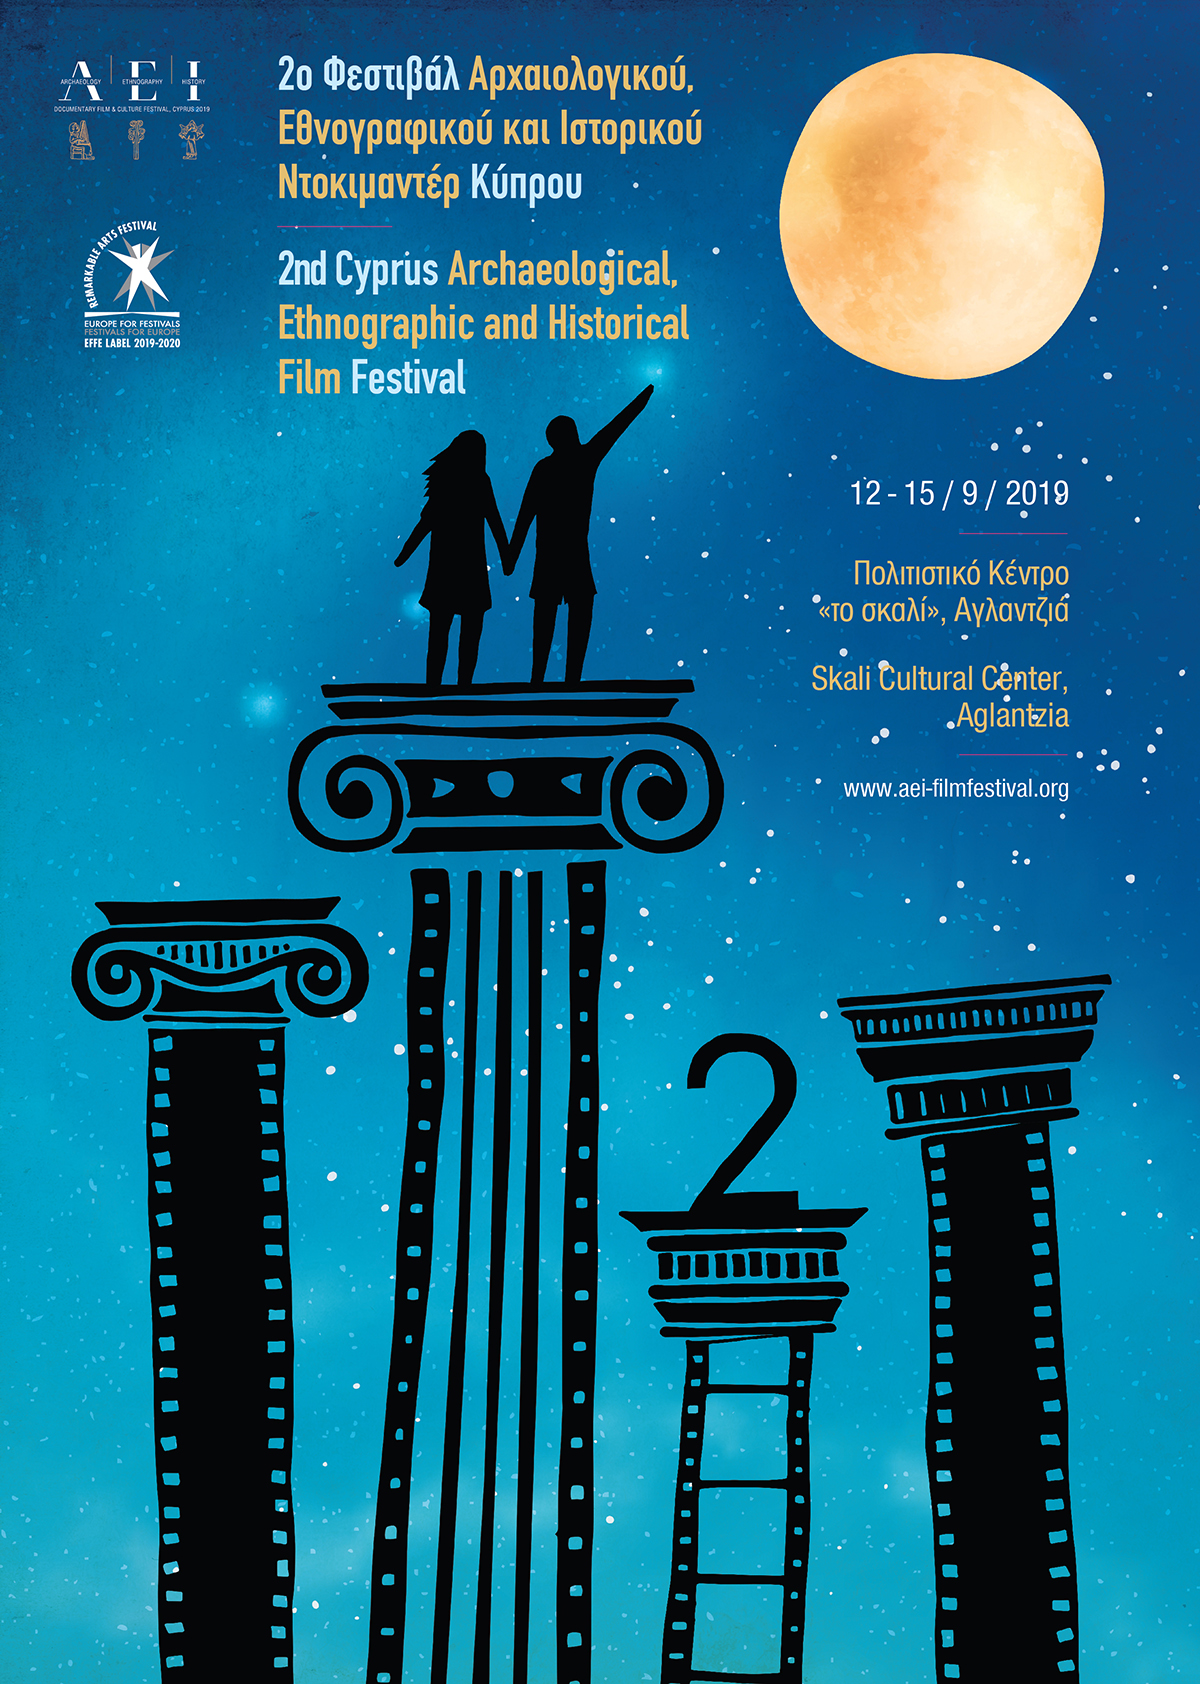 2nd CYPRUS ARCHAEOLOGICAL ETHNOGRAPHIC & HISTORICAL FILM FESTIVAL